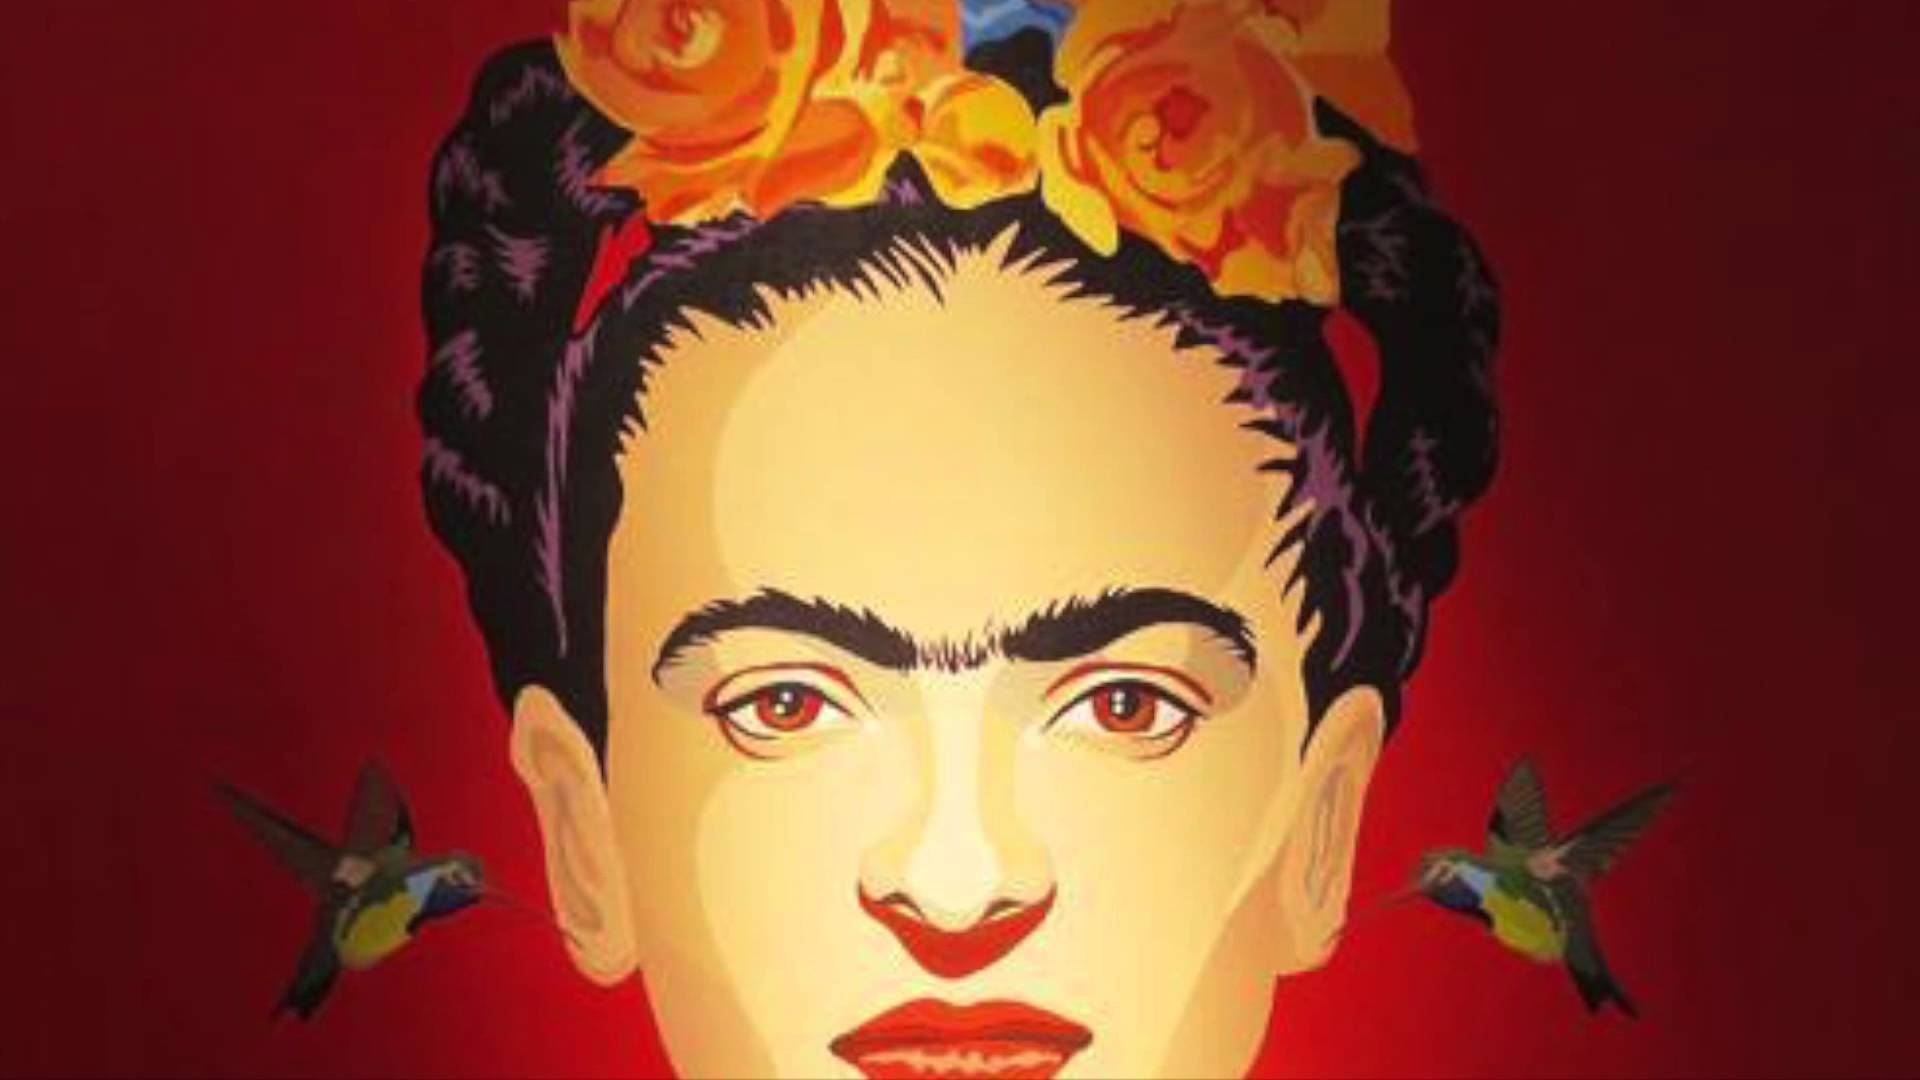 frida kahlo wallpaper desktop